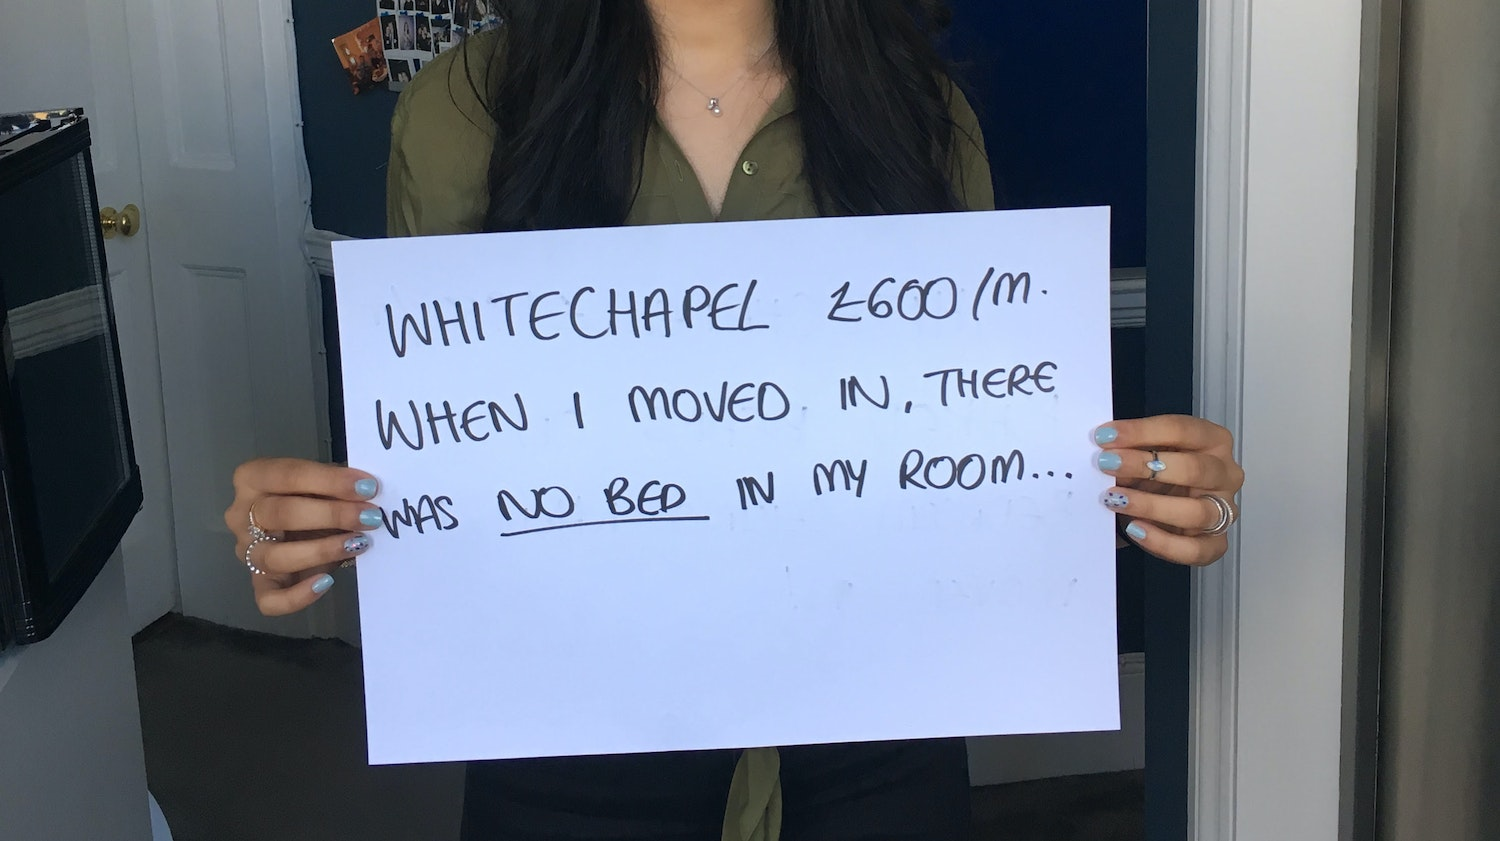 #VentYourRent – Our bad renting stories